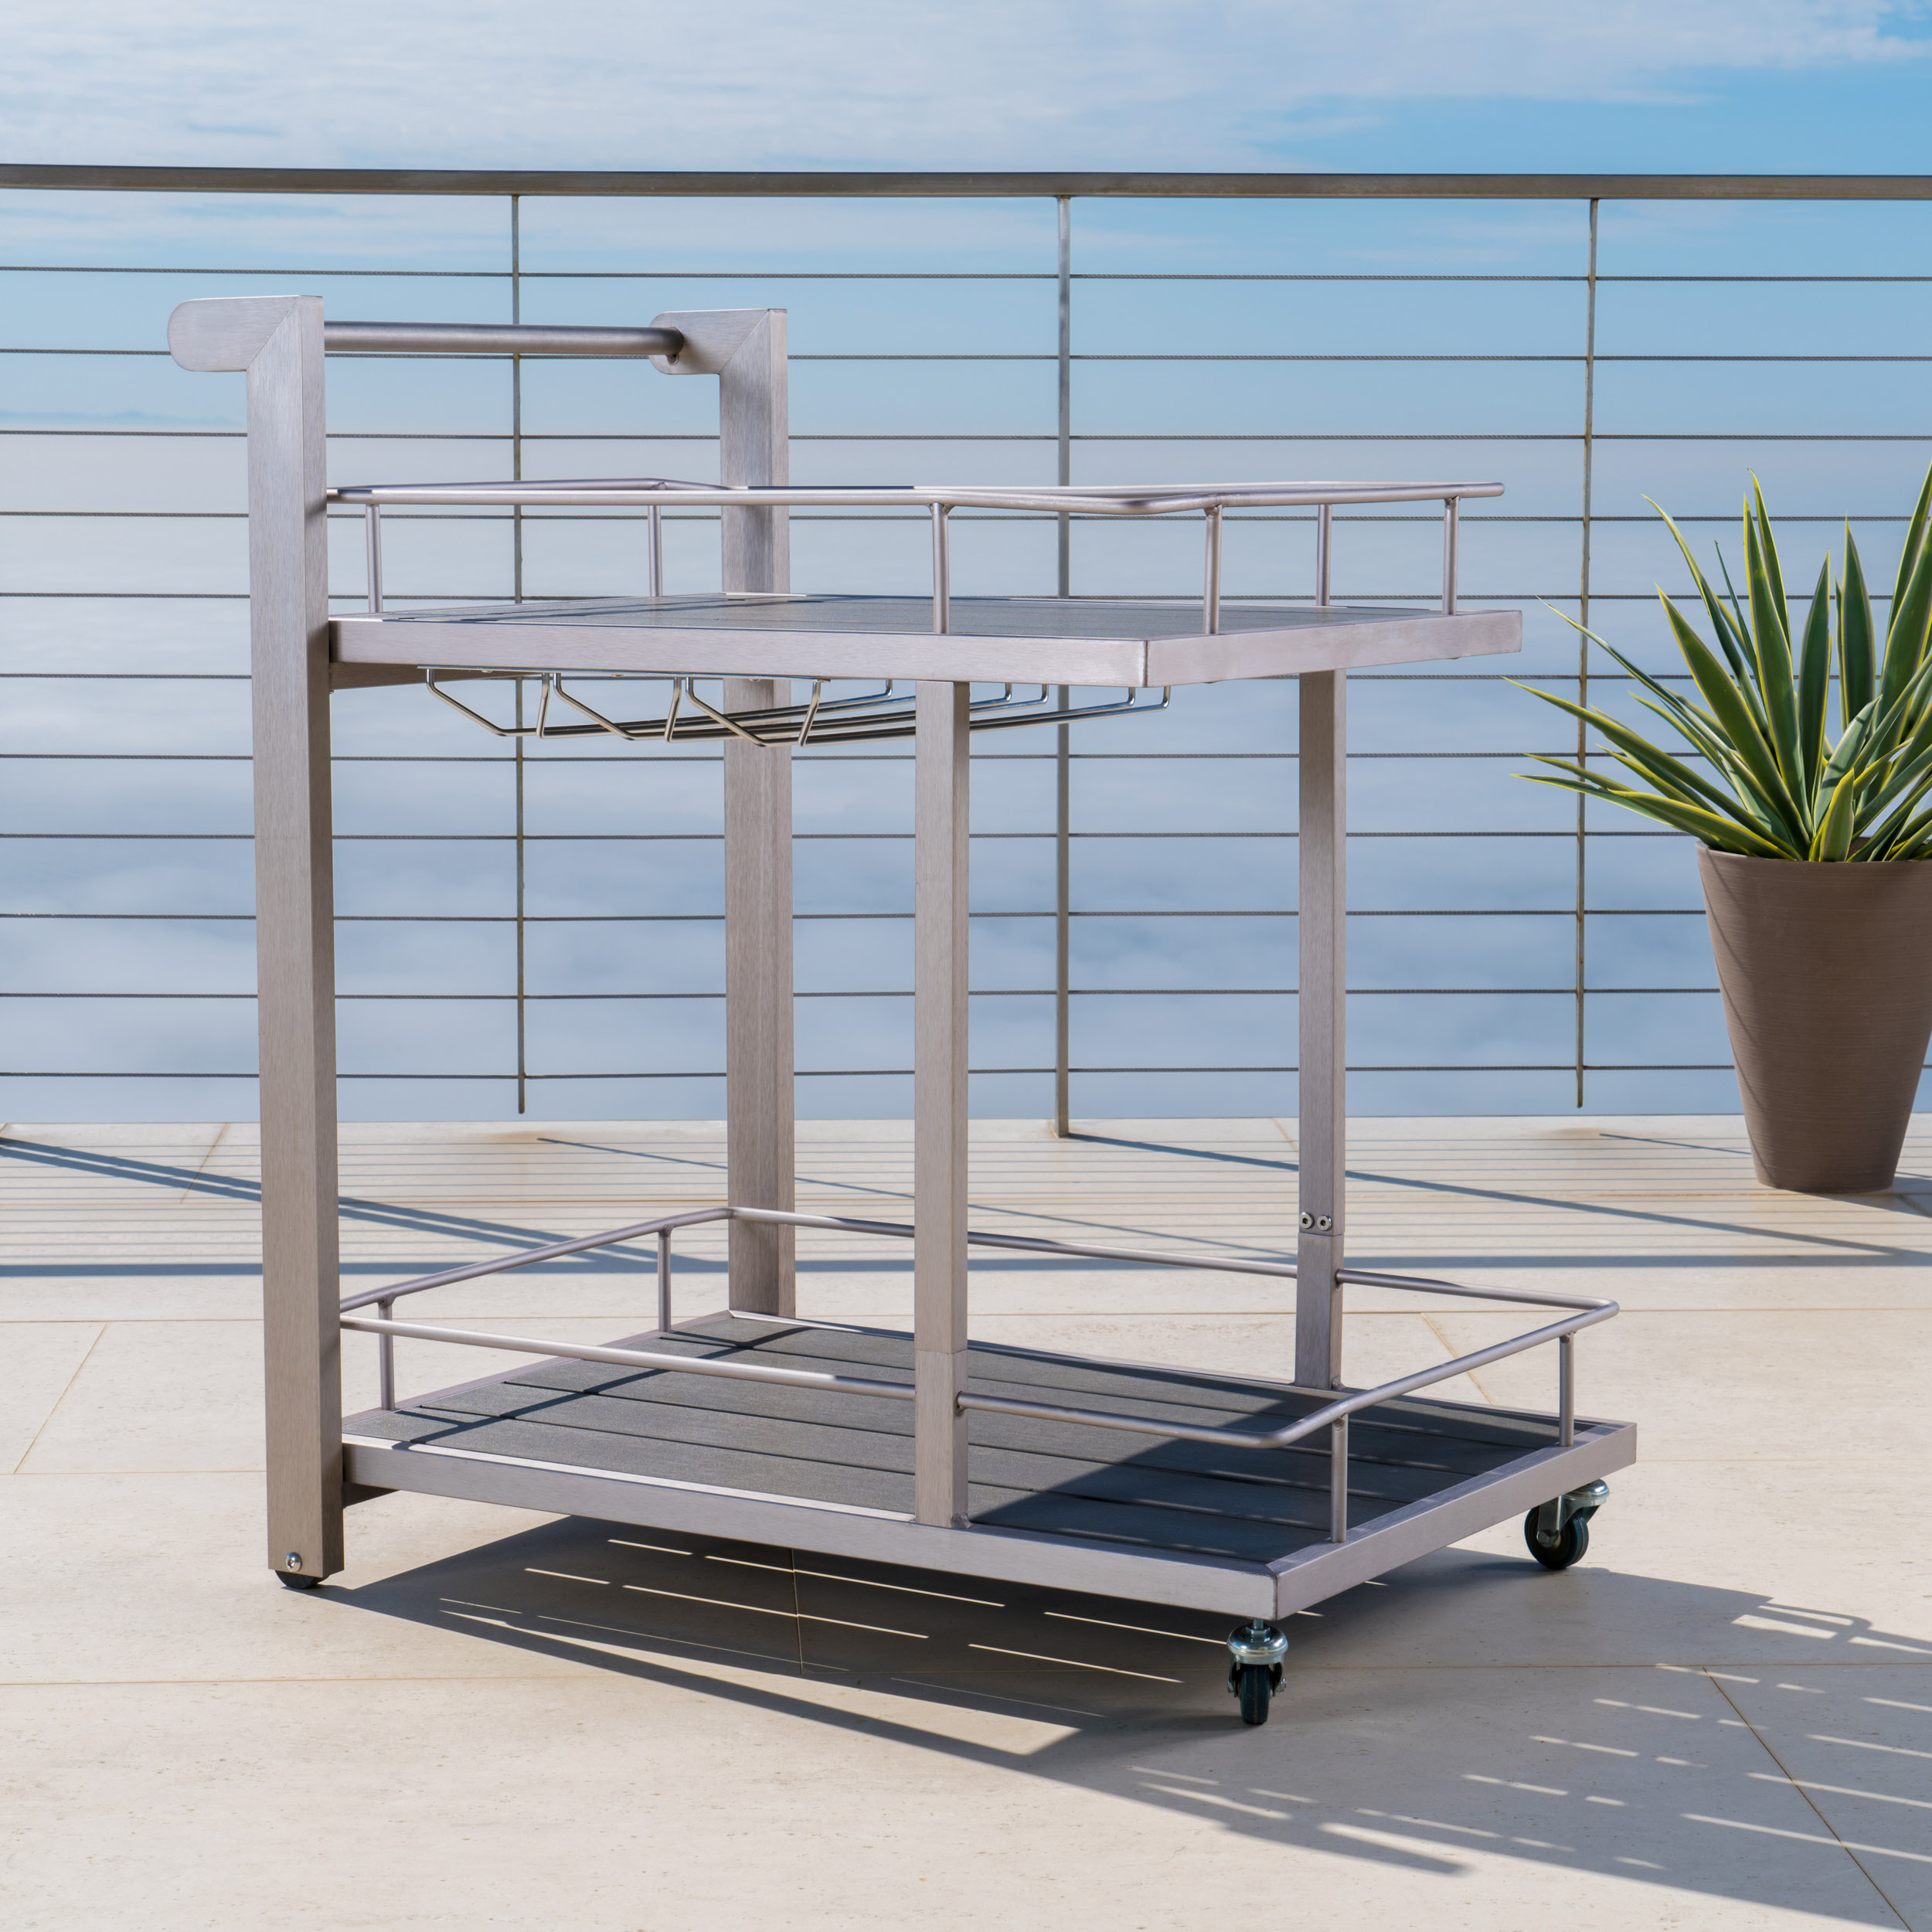 Miller Outdoor Aluminum Bar Cart with Polymer Blended Wood Top, Natural Color